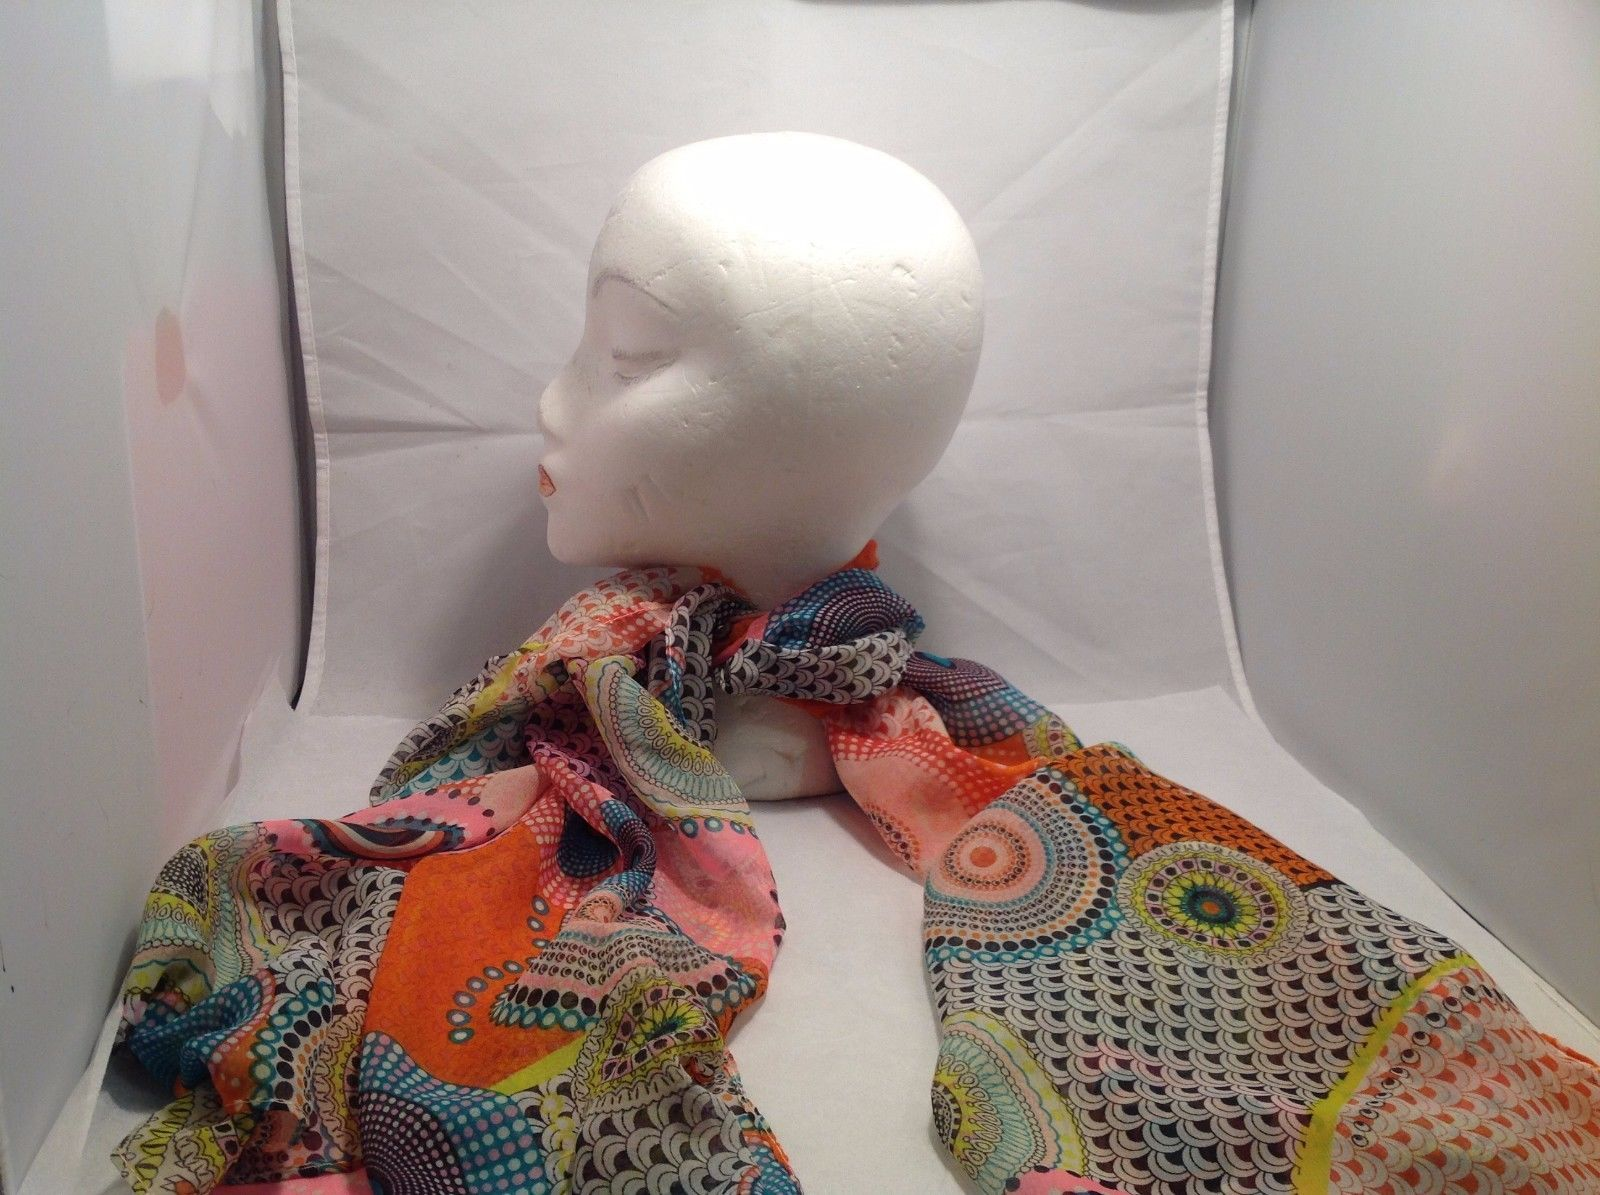 New Mad About Style Scarf Pink Blue Orange White Black Yellow Circles